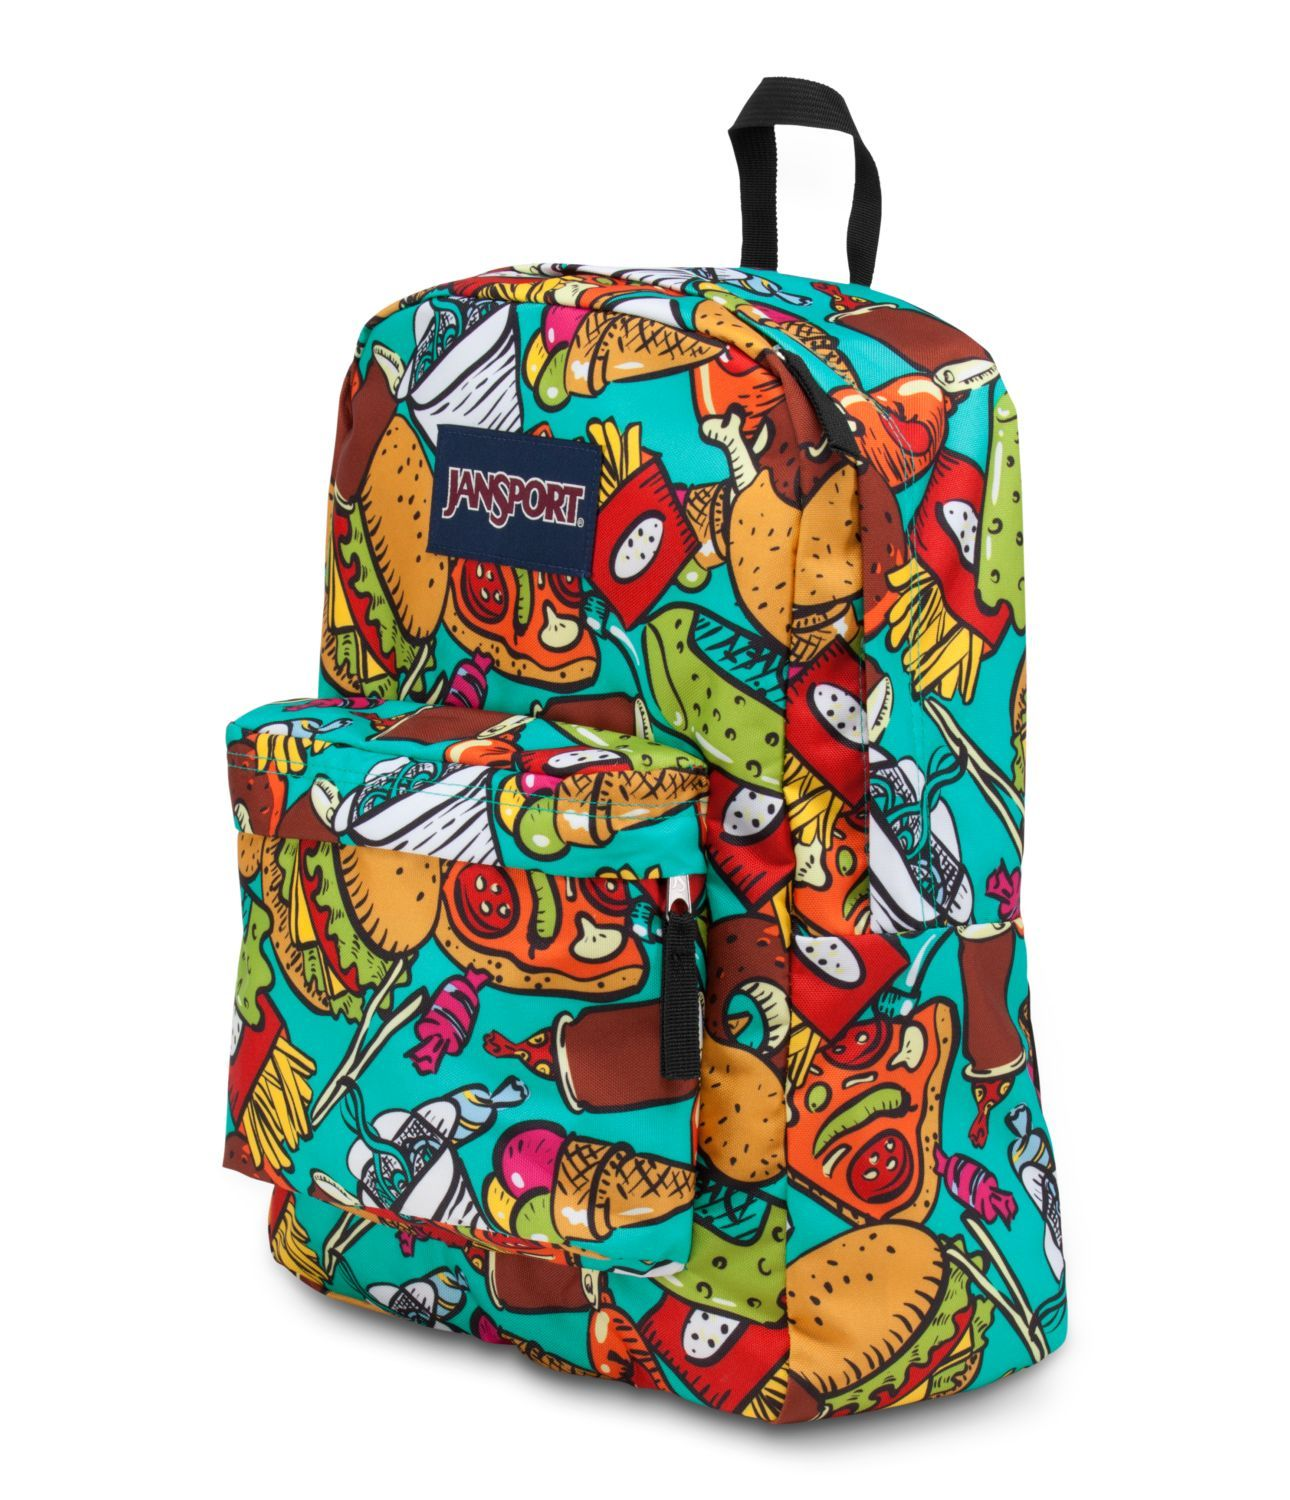 8508df7a77 jansport junk food backpack - Google Search